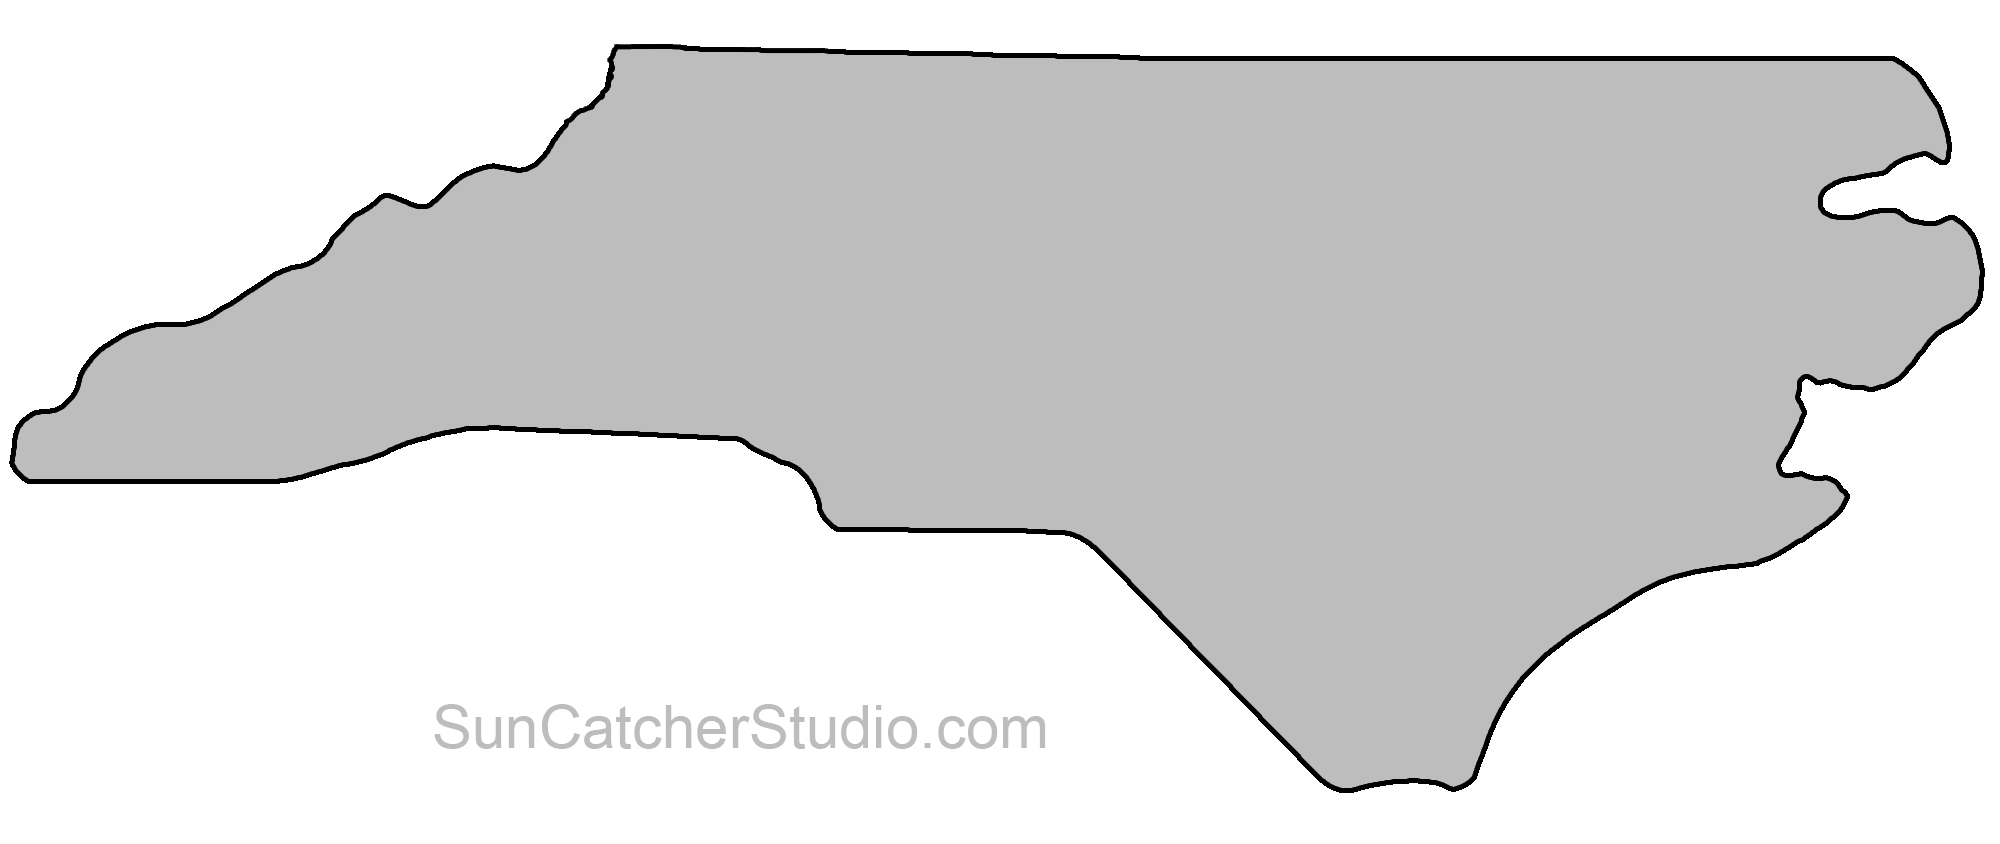 North carolina state clipart picture royalty free North Carolina - Map Outline, Printable State, Shape, Stencil ... picture royalty free